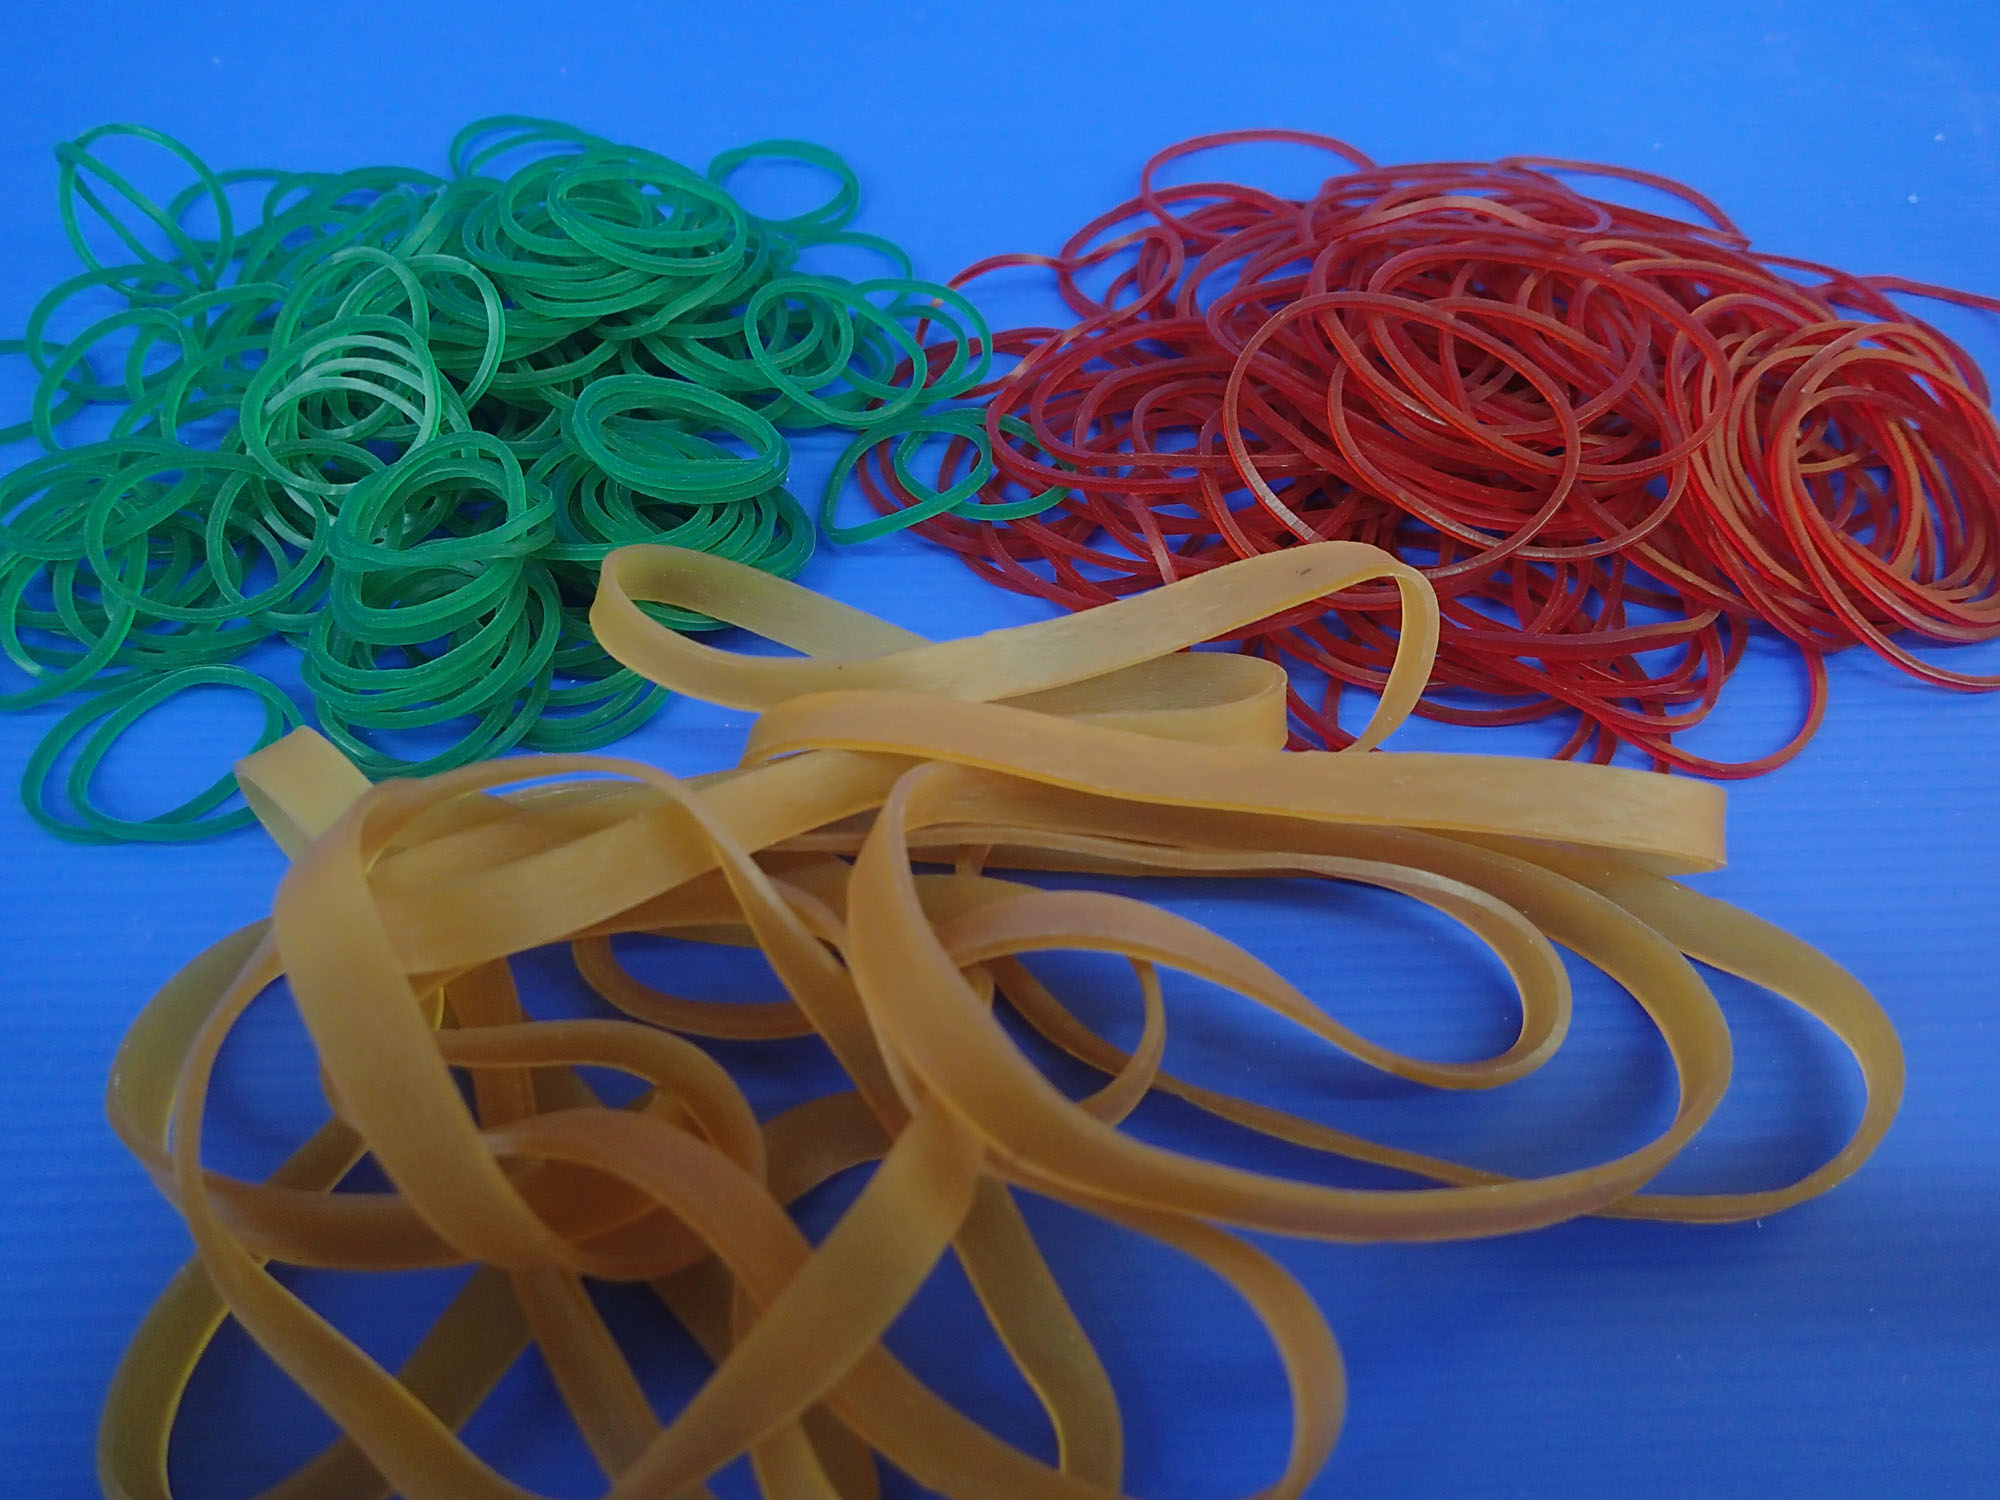 5360811bed8438507500038e_F3%20Rubber%20Bands.jpg